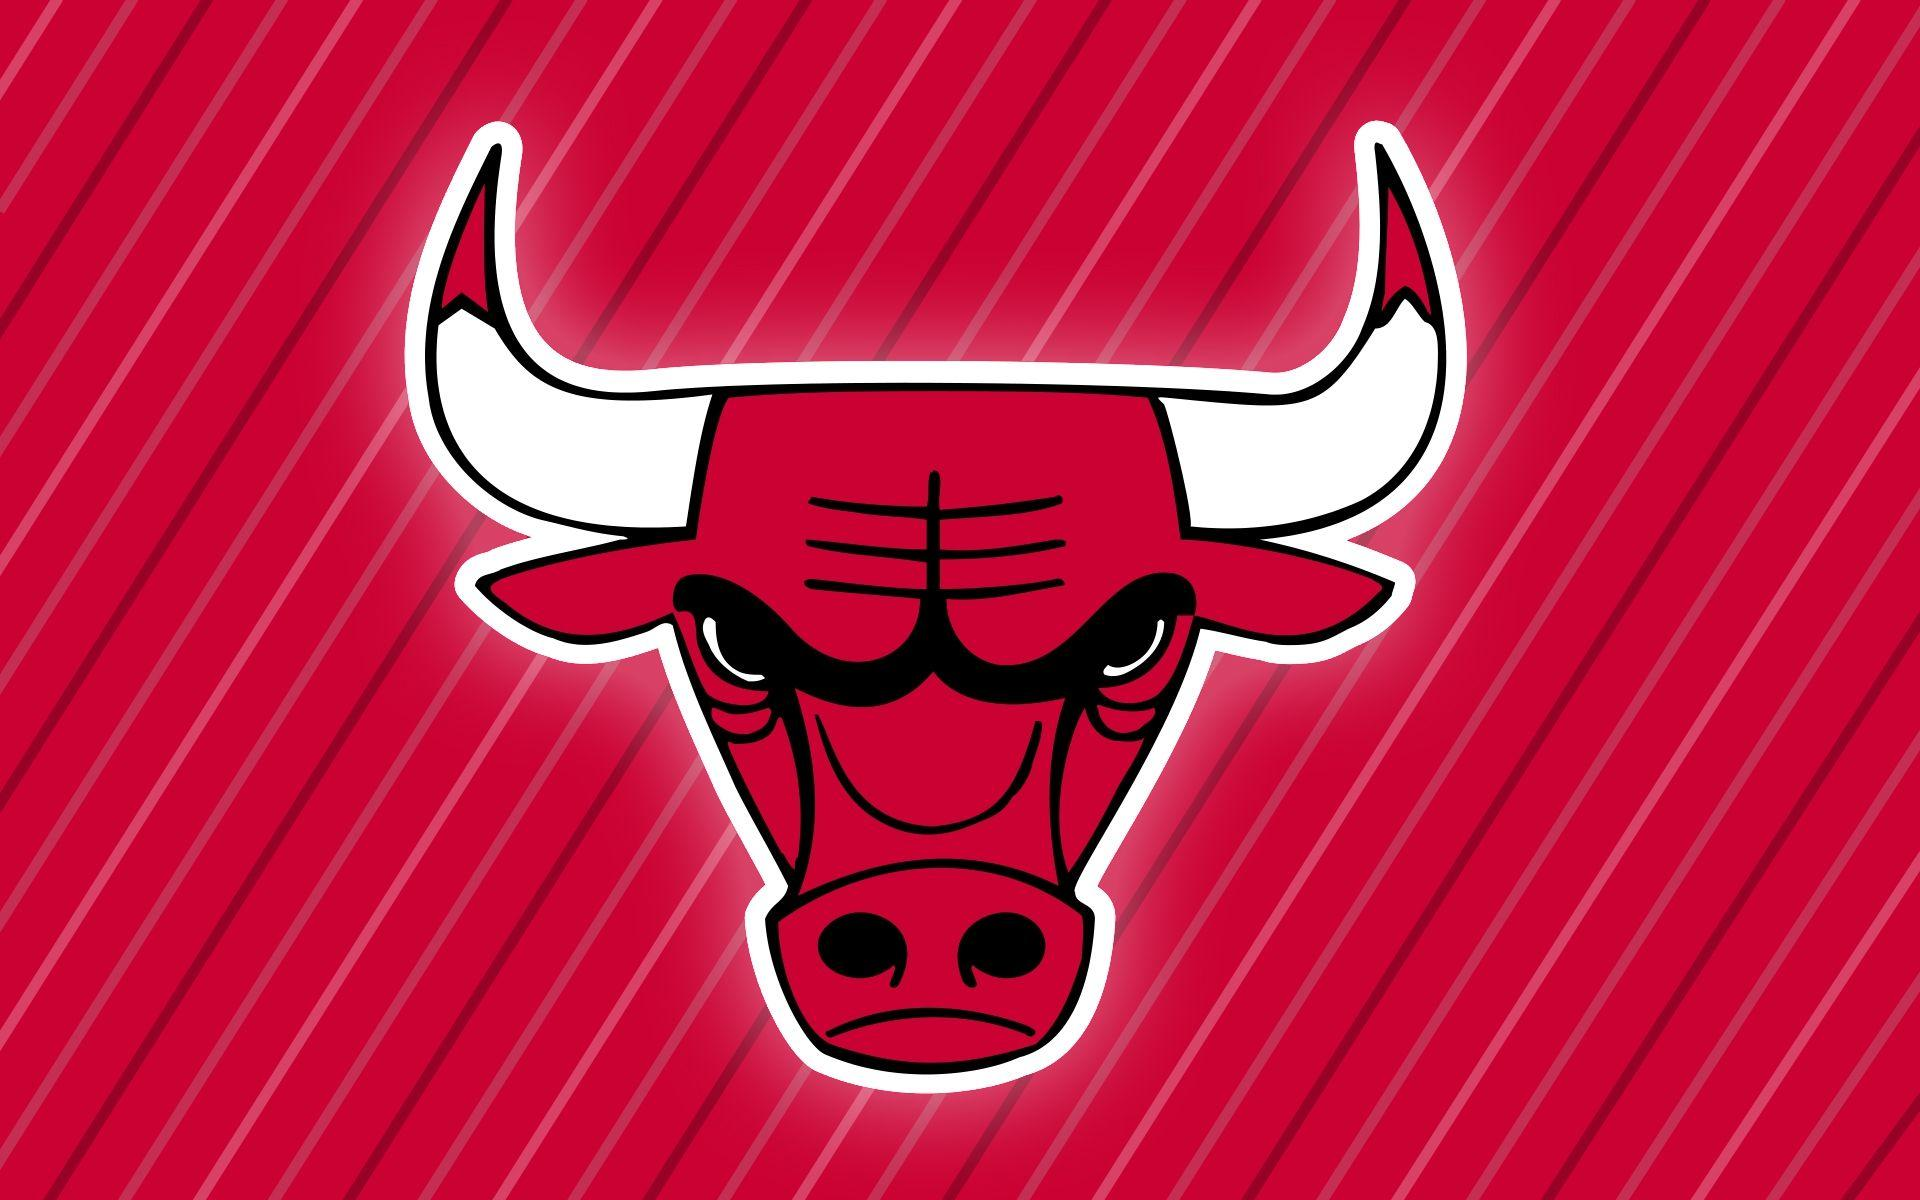 Chicago Bulls Wallpaper 1 24379 Images HD Wallpapers| Wallfoy.